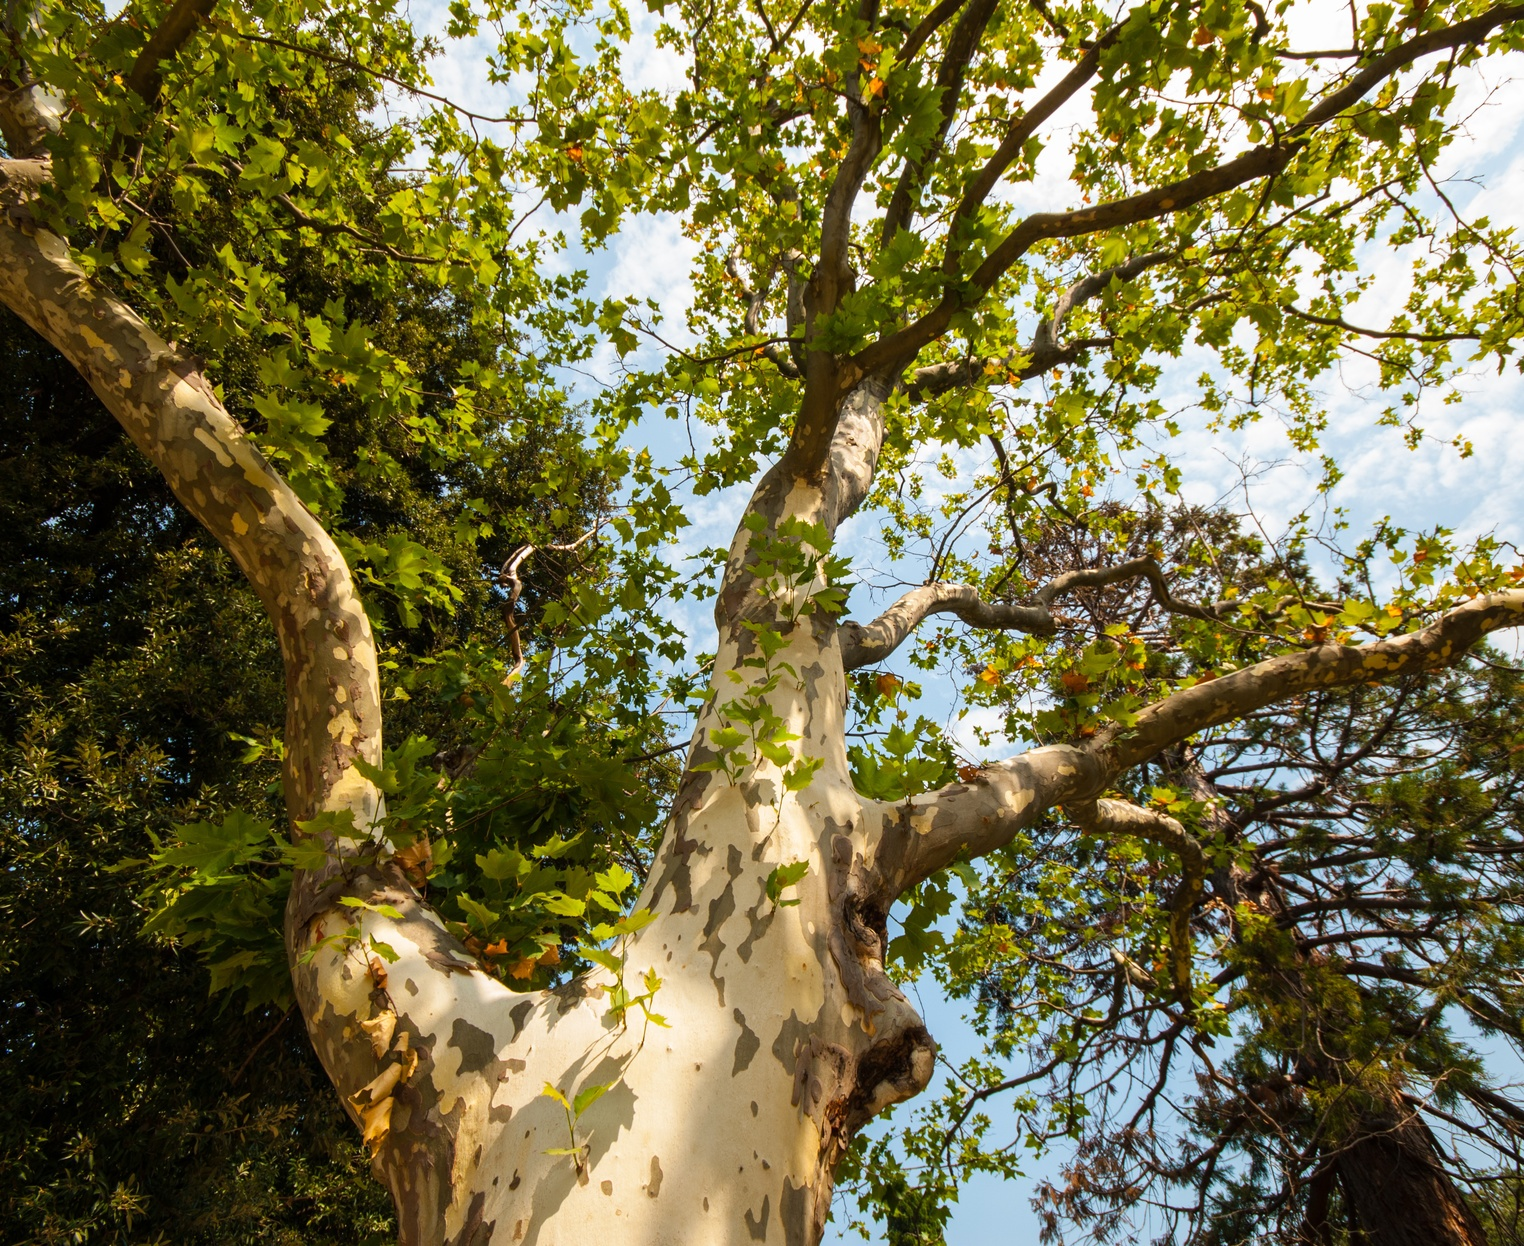 Sycamore trees are notorious for causing damage to underground sewer lines.